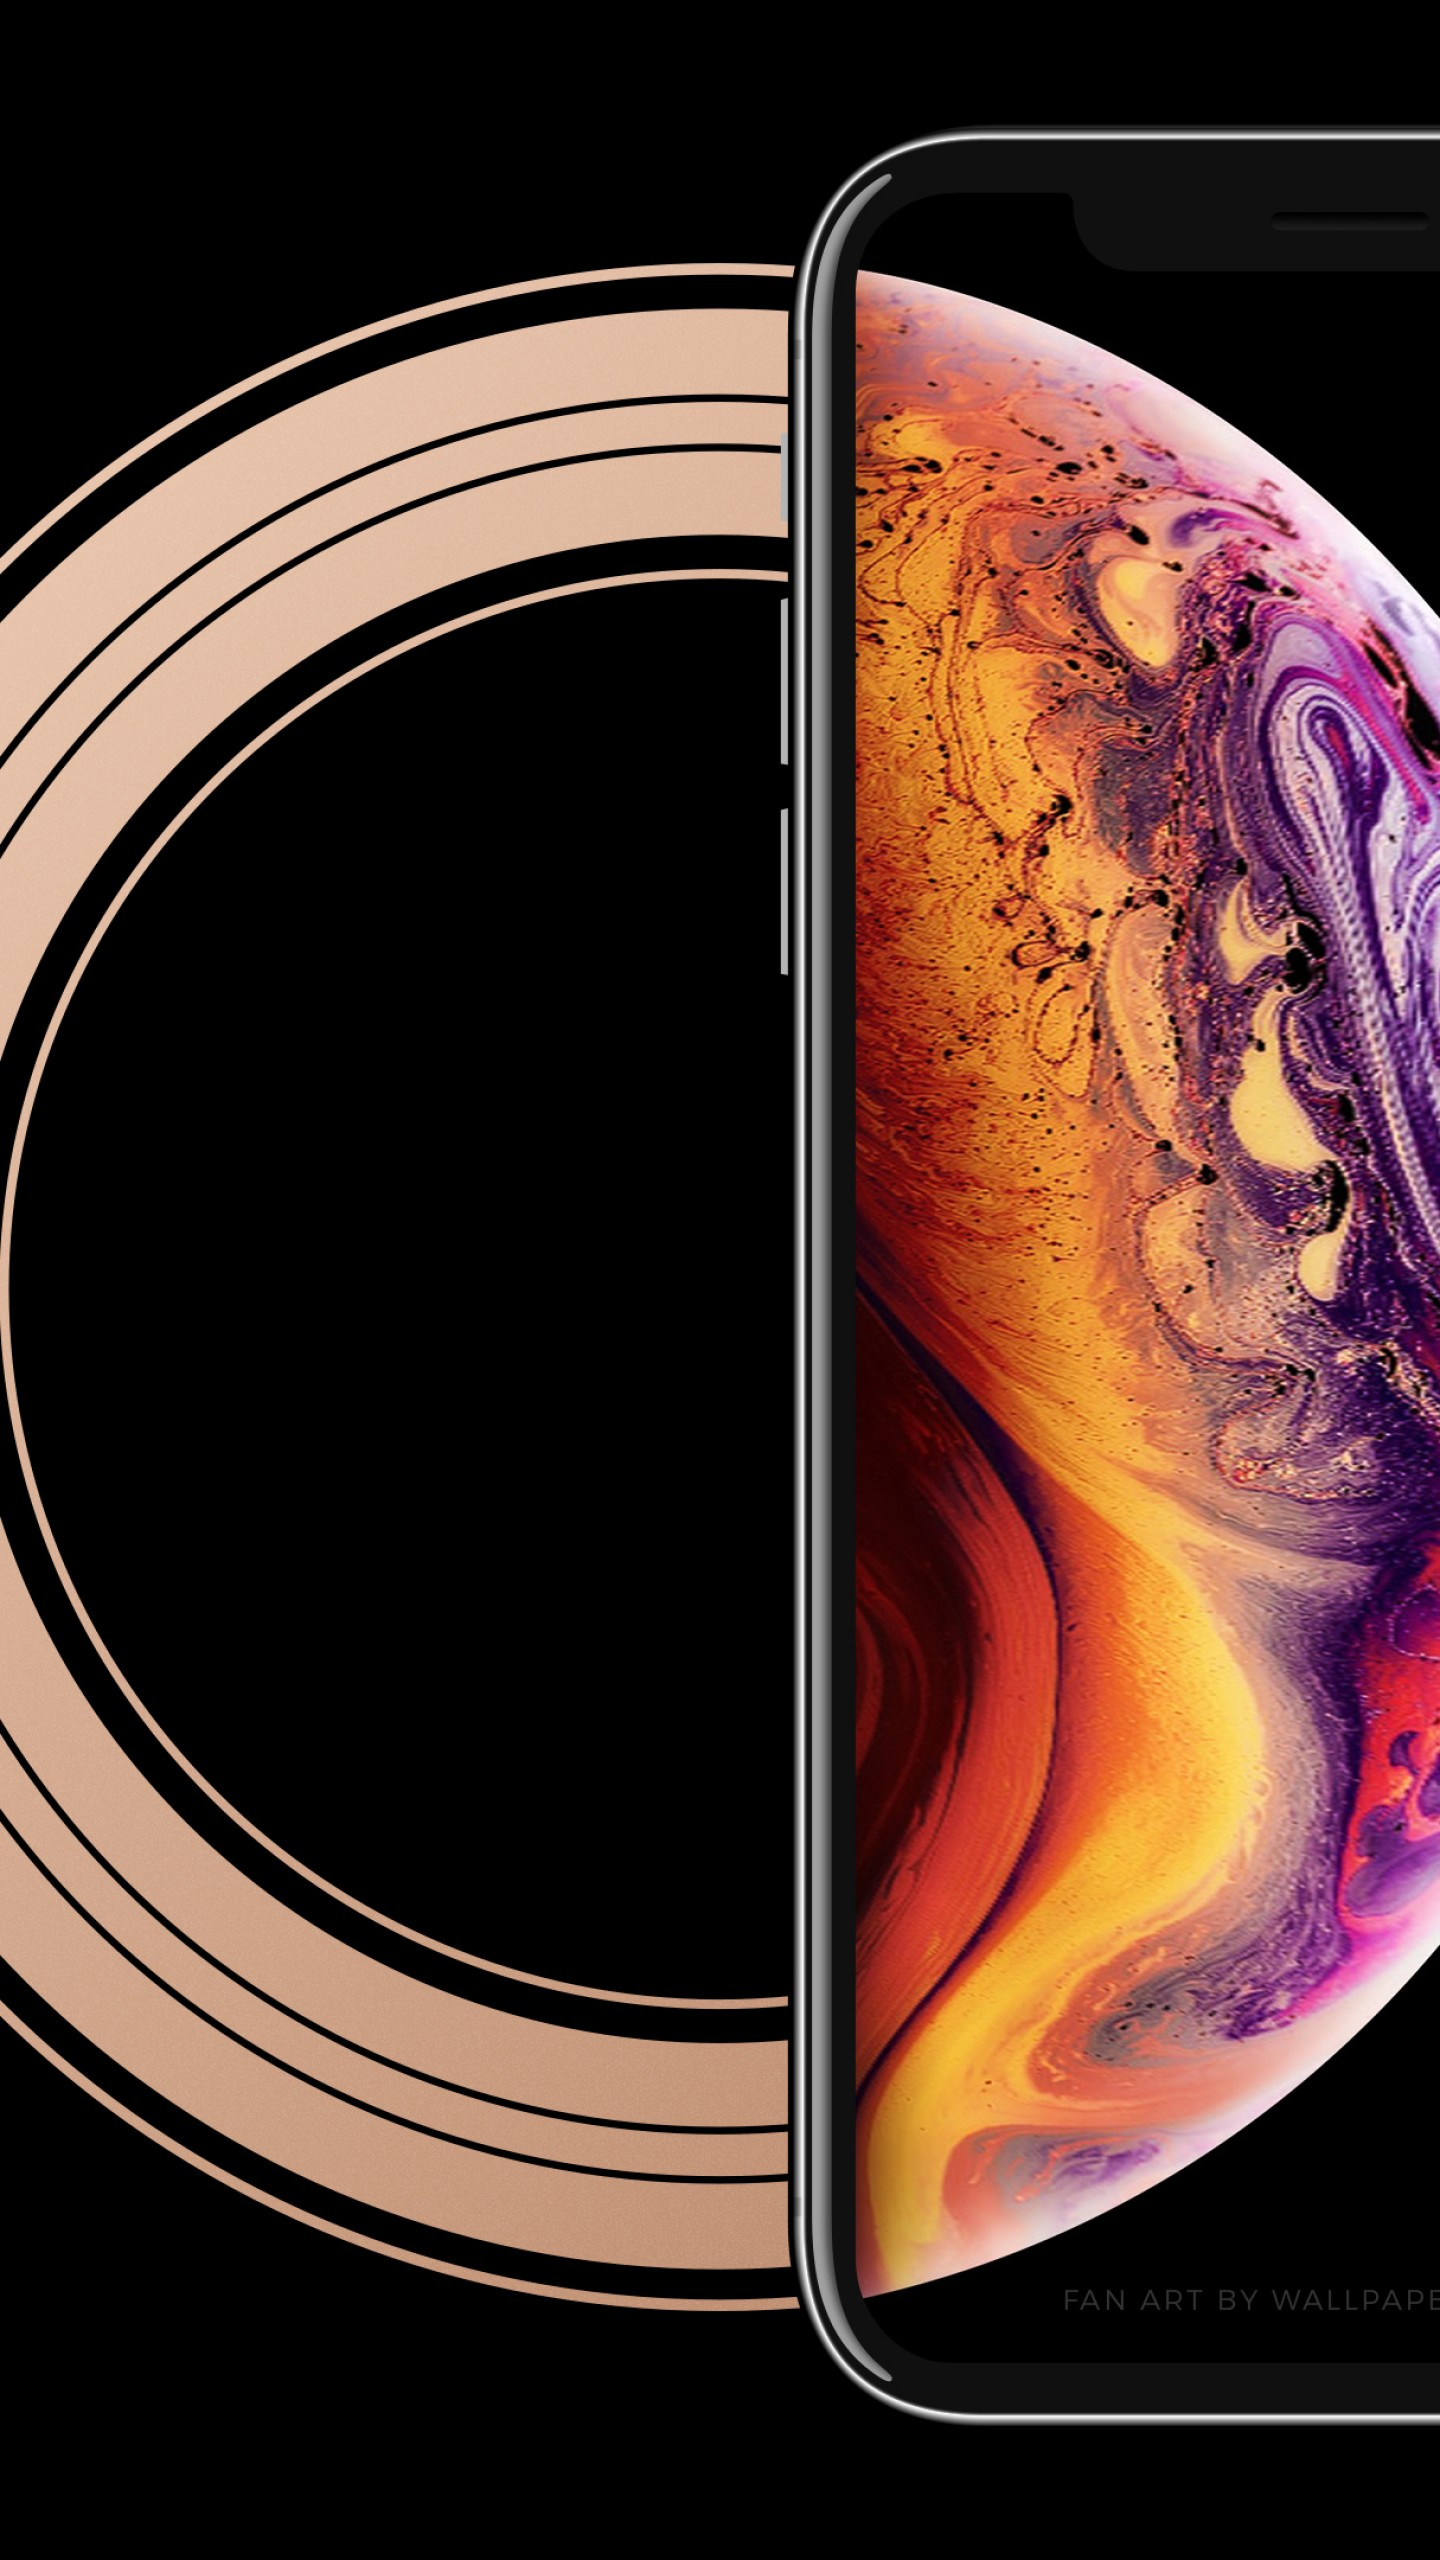 Wallpaper iPhone XS, 4K, OS 20235